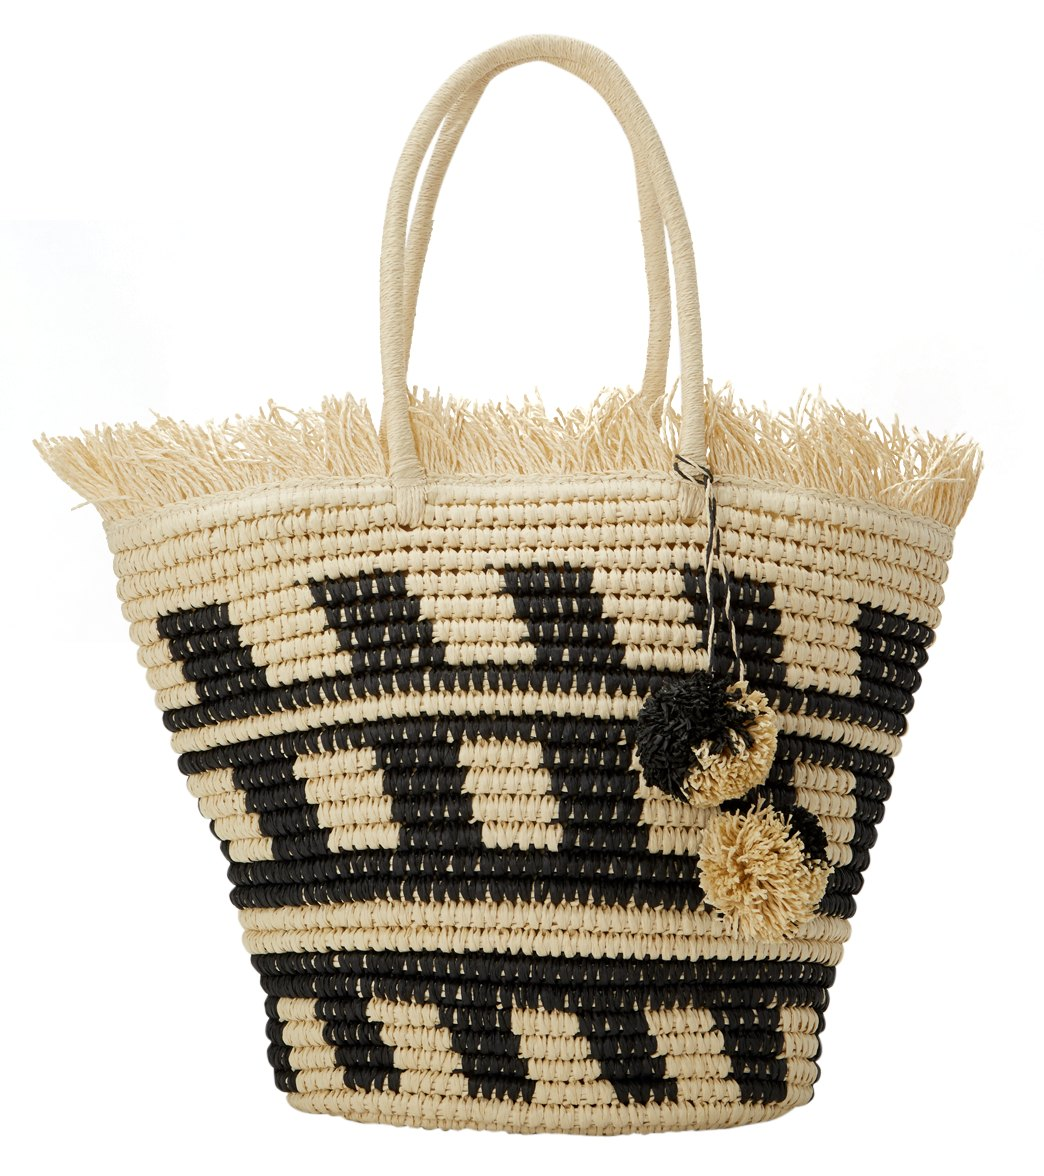 813931eae Pia Rossini Bermuda Straw Tote Bag at SwimOutlet.com - Free Shipping